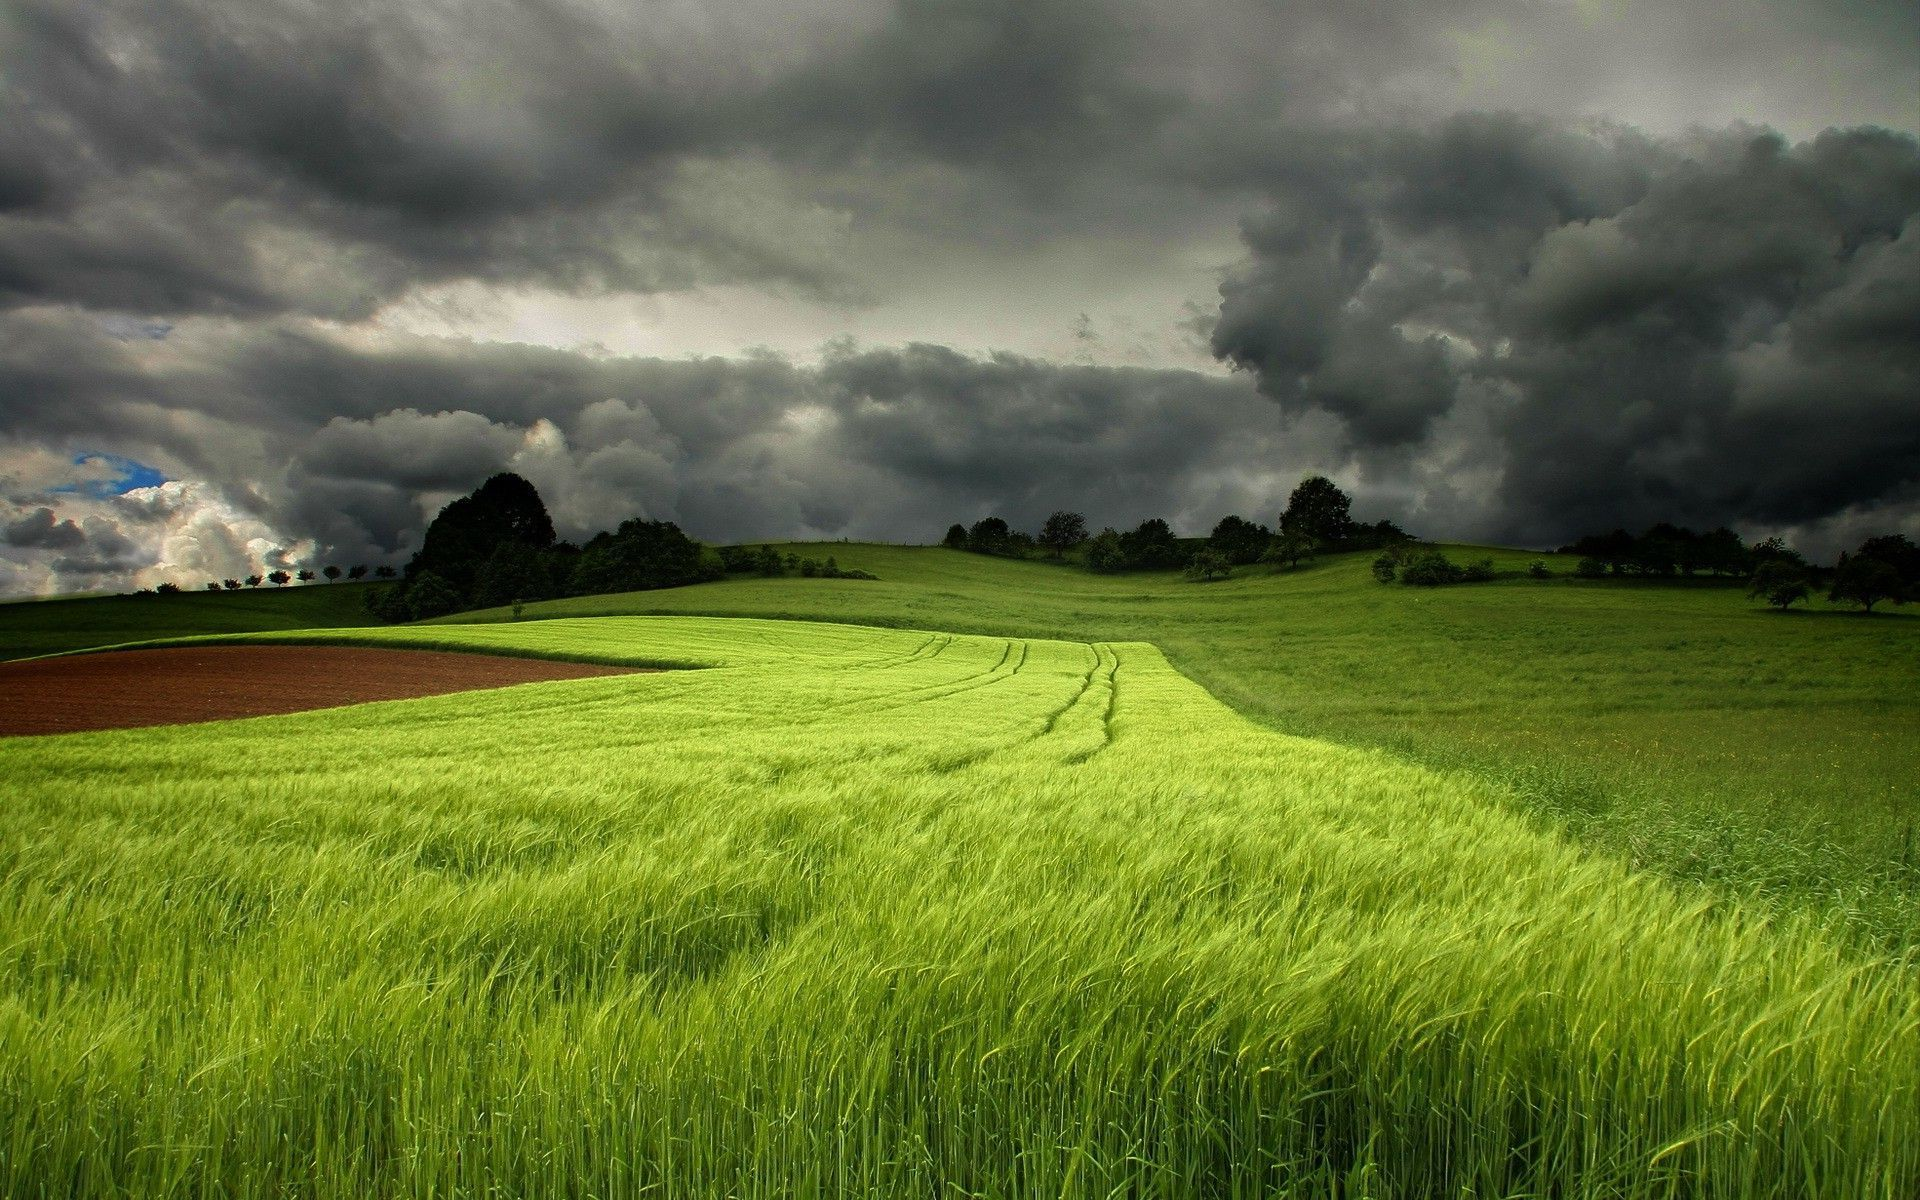 Storm Nature Wallpapers Top Free Storm Nature Backgrounds